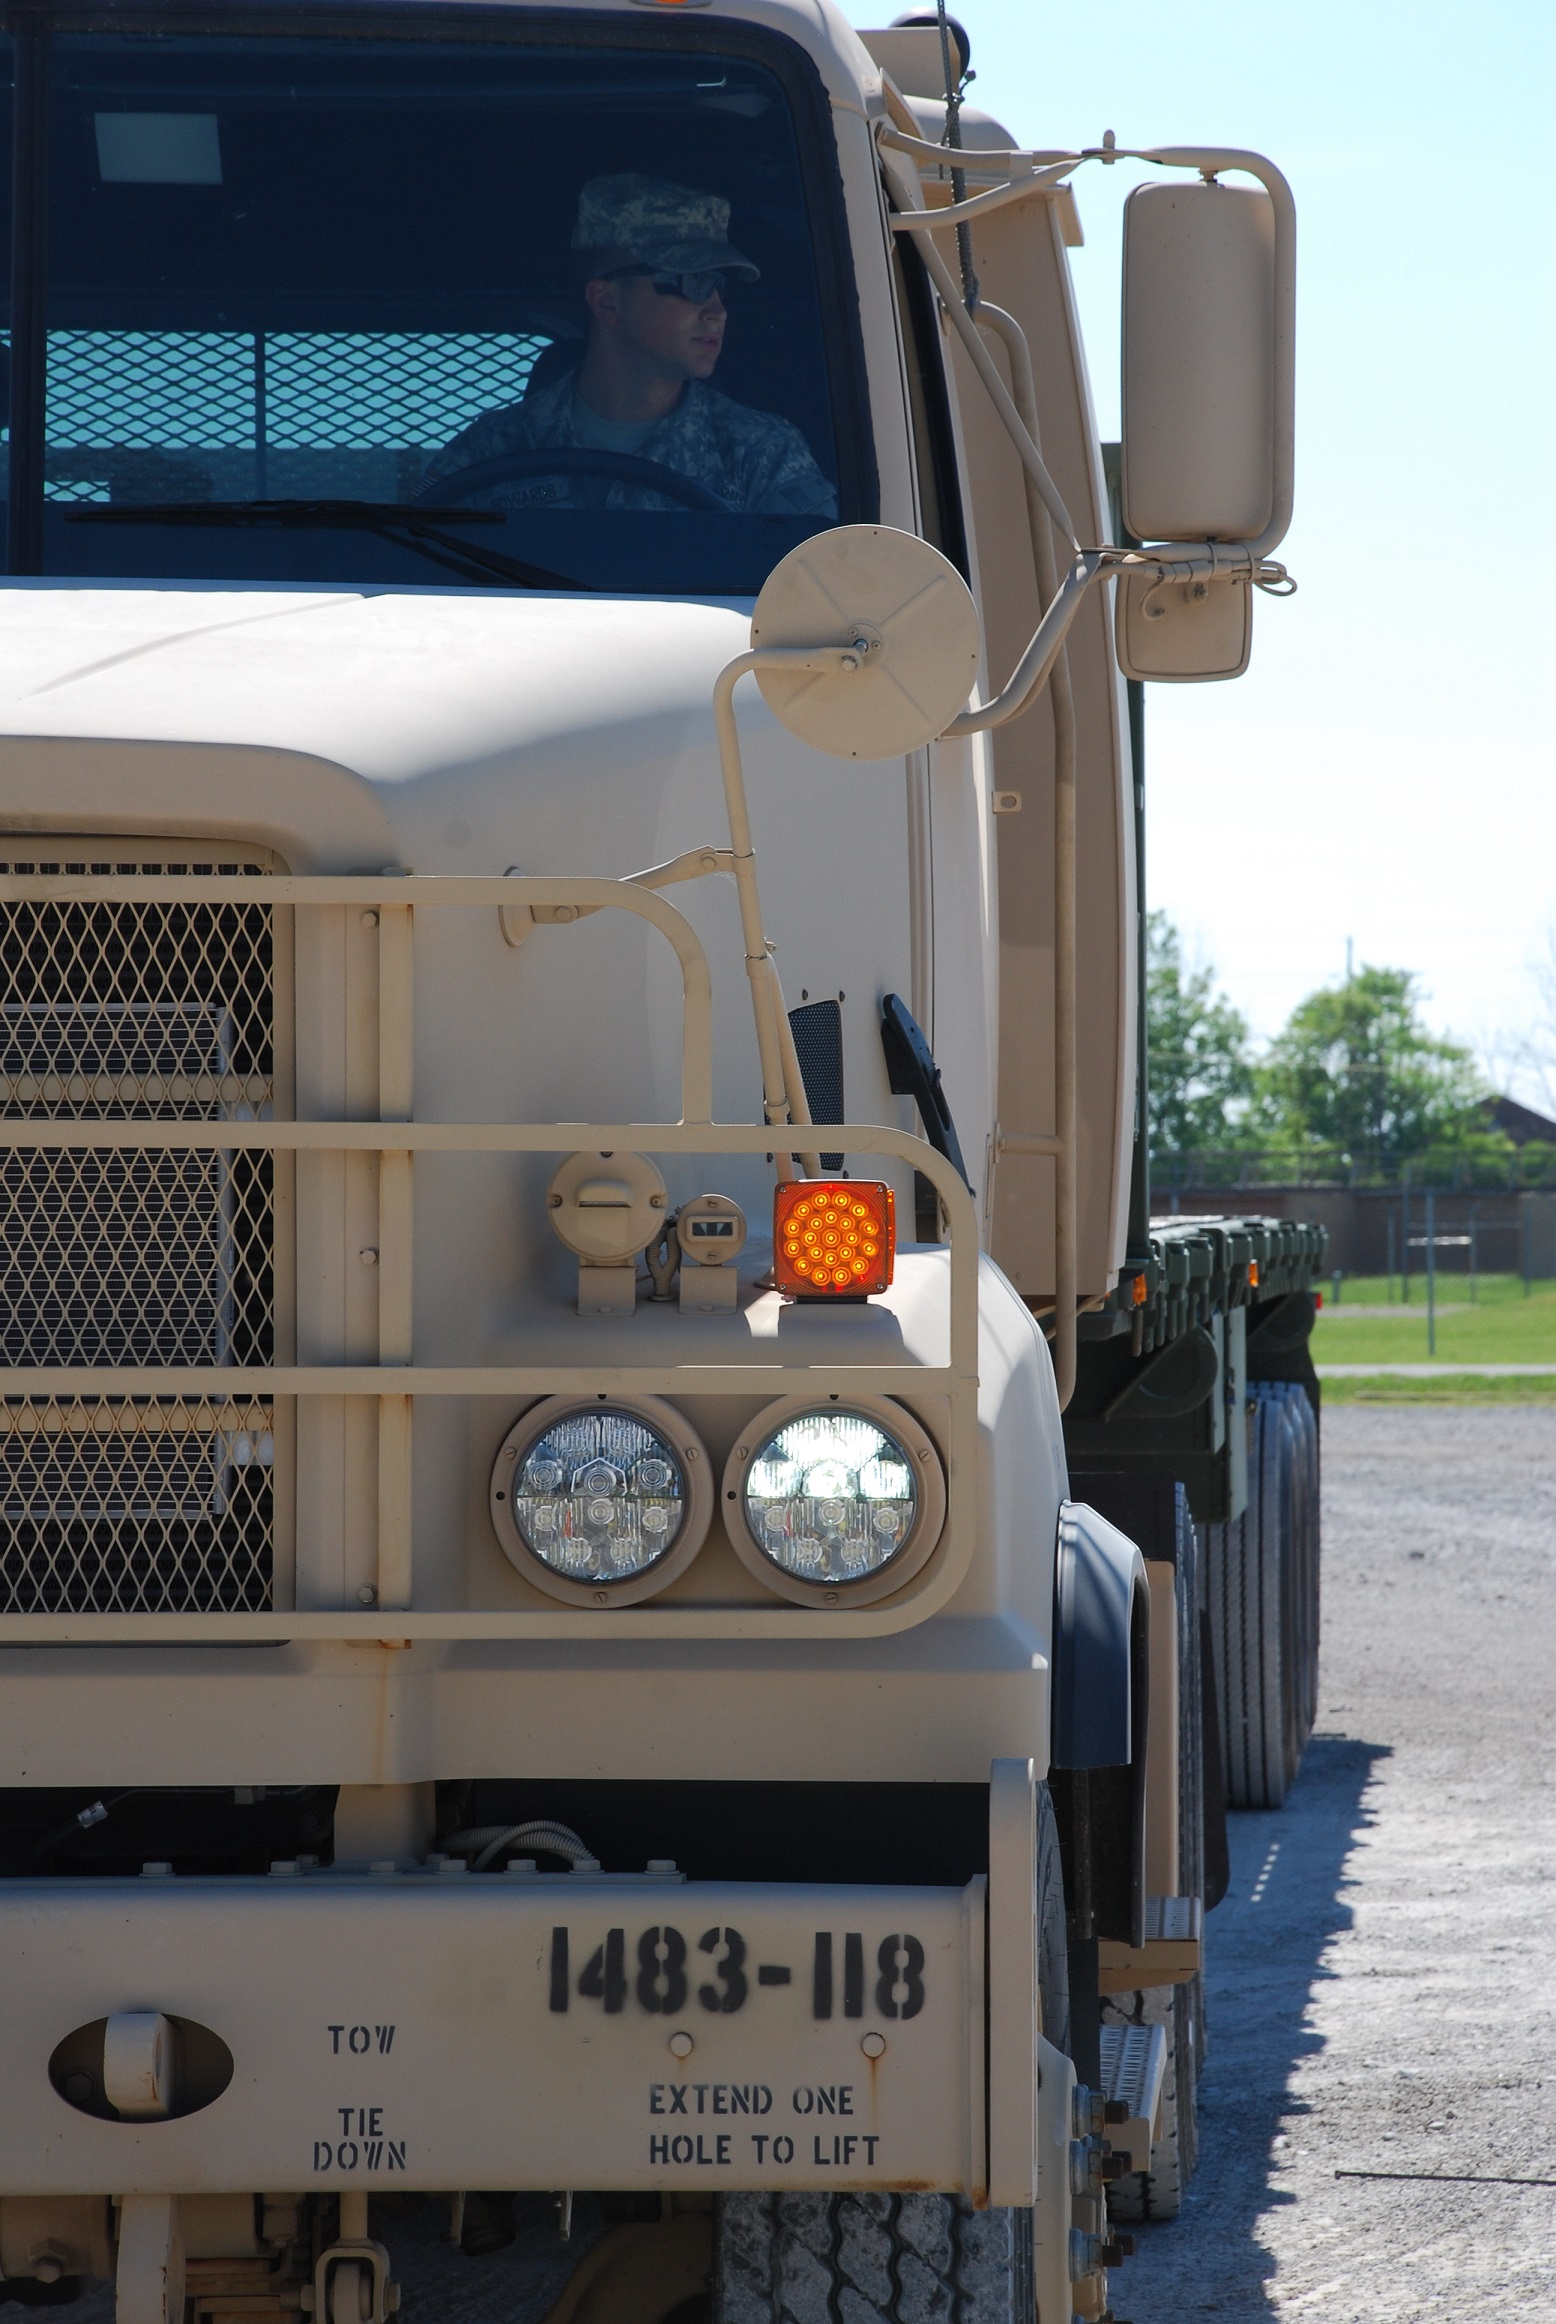 FMCSA Proposes Younger Driver Pilot Program for Former Military